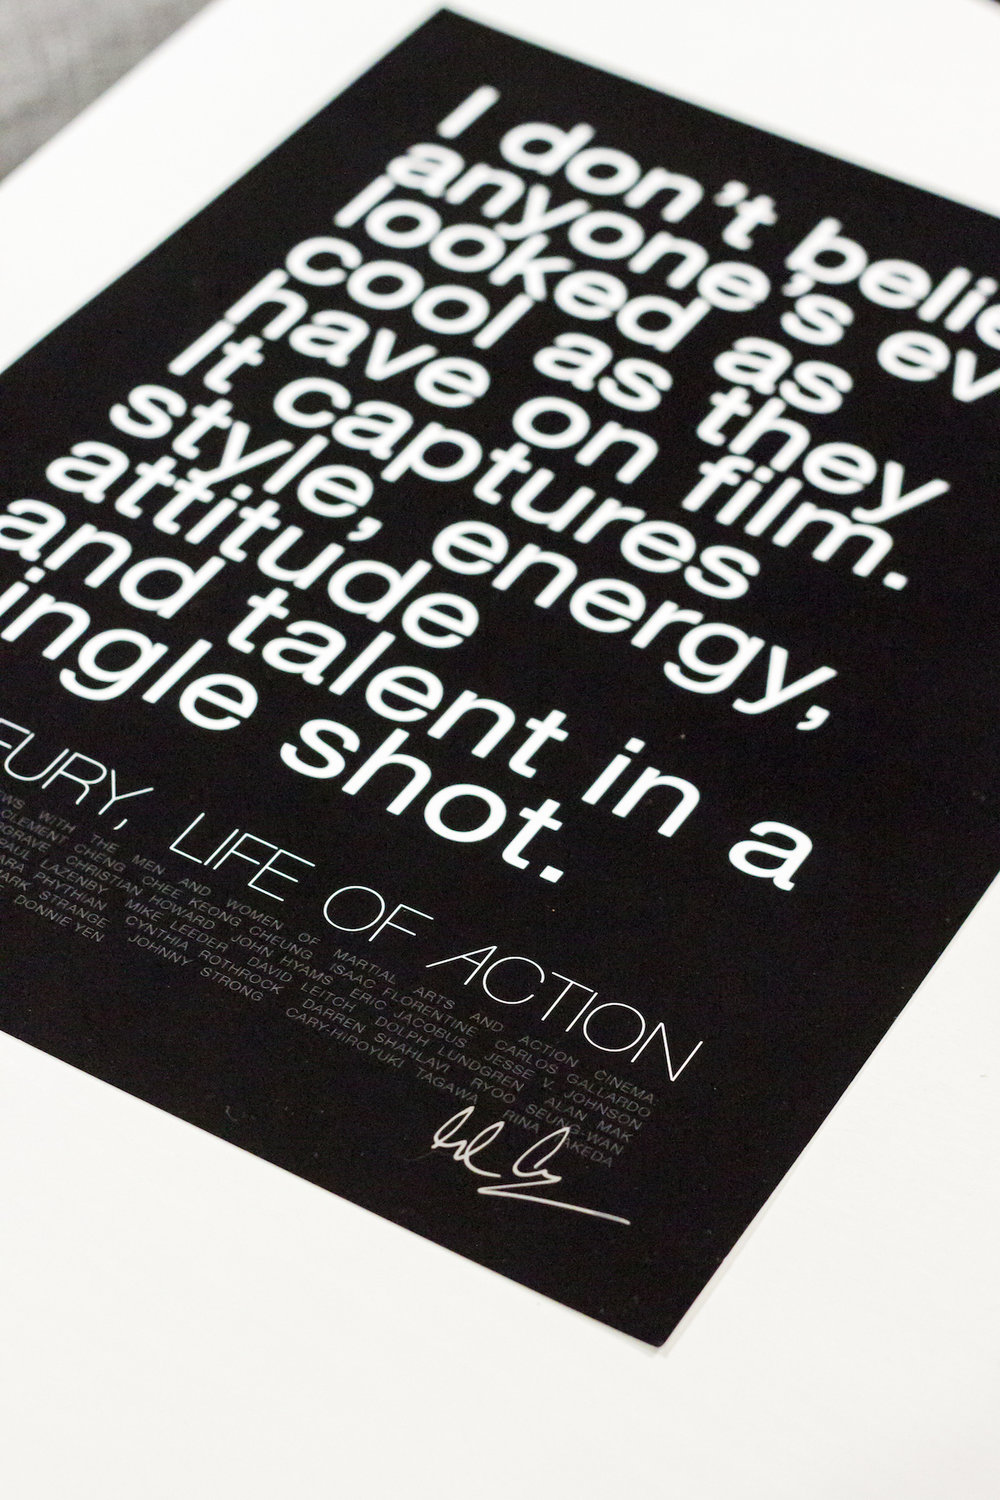 Action movie quote poster print | Life of Action by Mike Fury